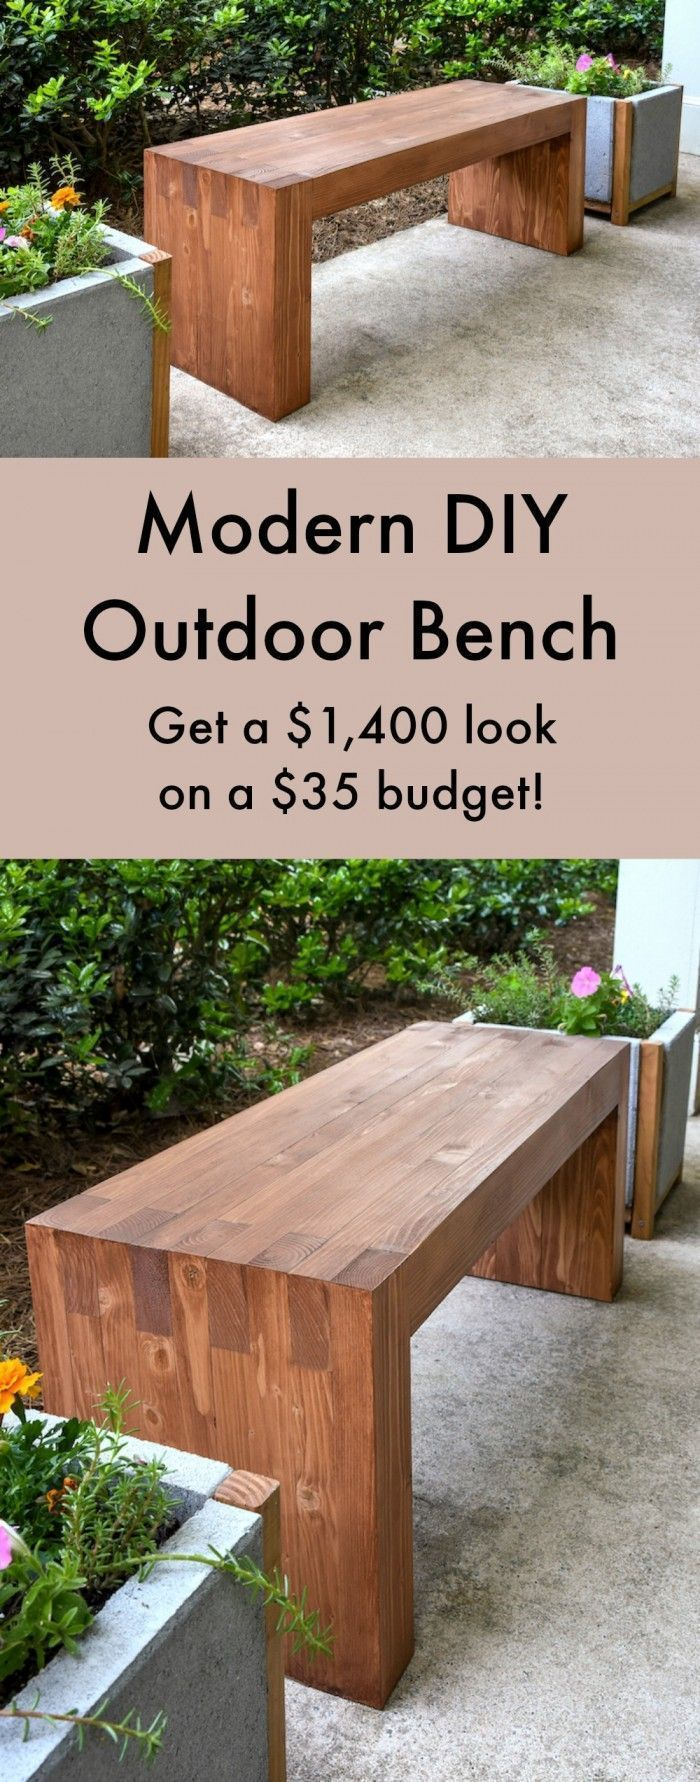 DIY Outdoor Bench Inspired By Williams Sonoma (So Easy!) - DIY Candy